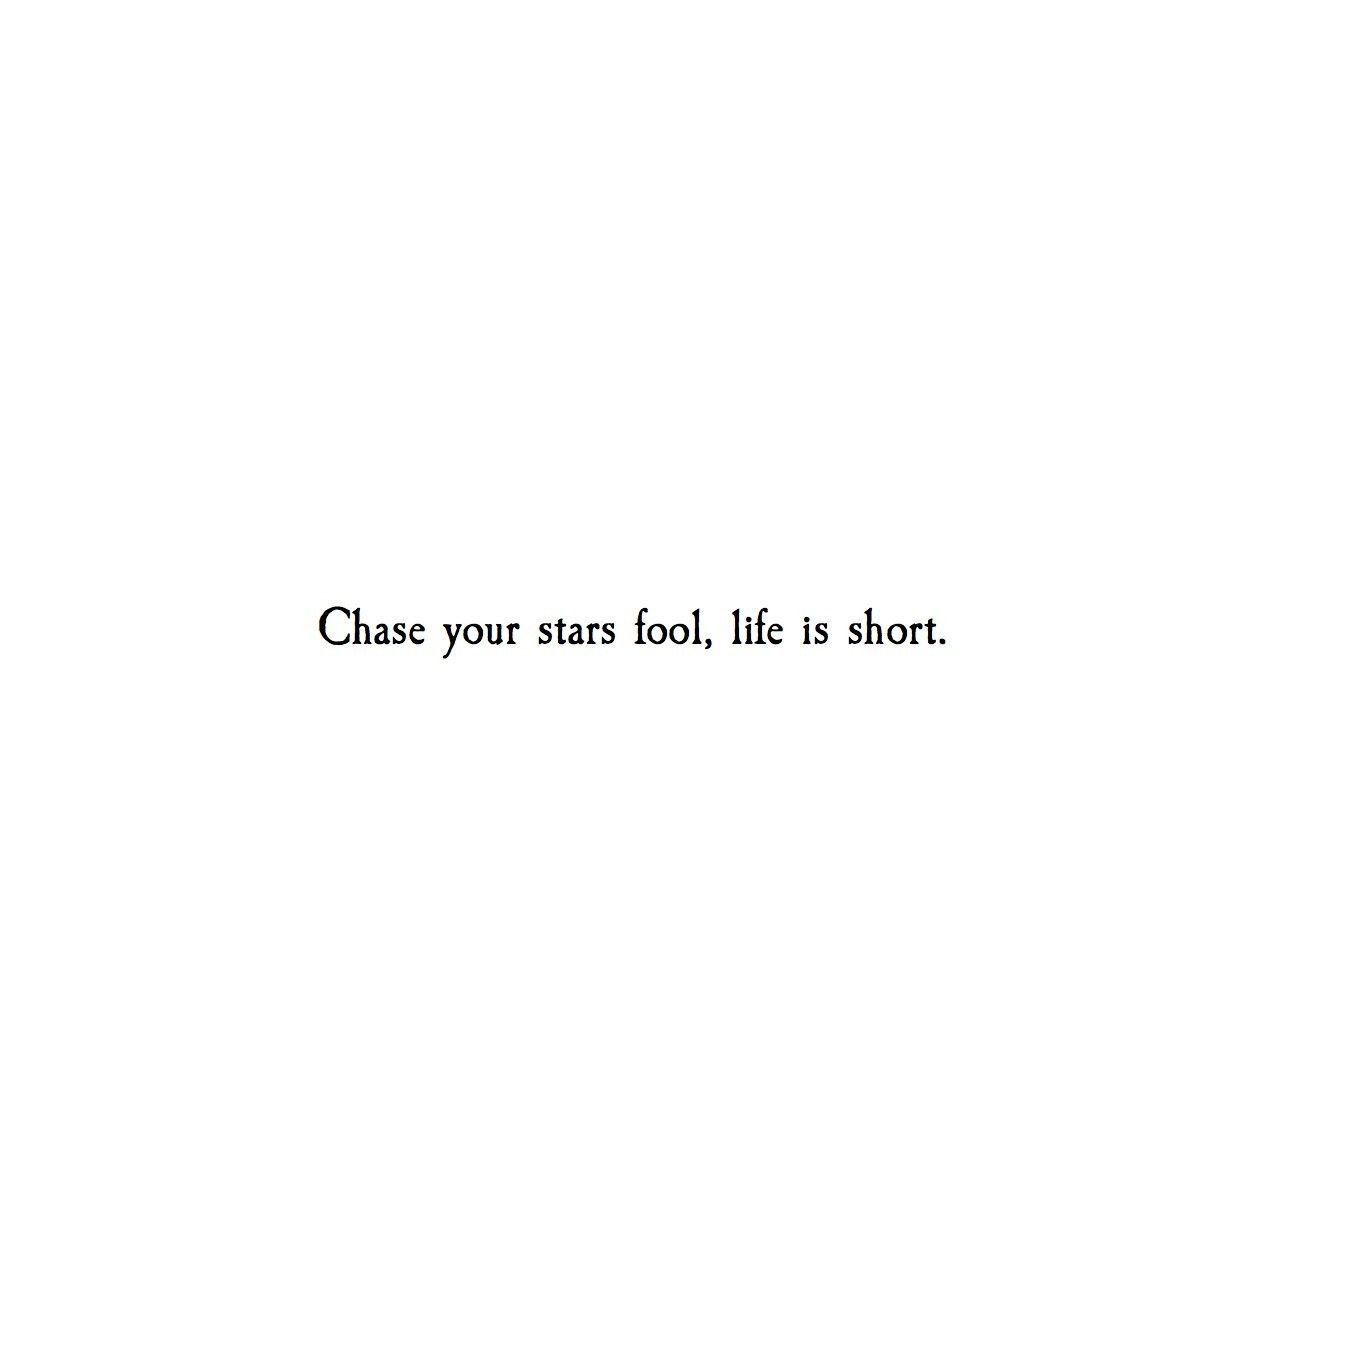 Cute Short Life Quotes For Tattoos Life Goes On Quote: 'Chase' @Atticuspoetry #Atticuspoetry #stars #life. This X